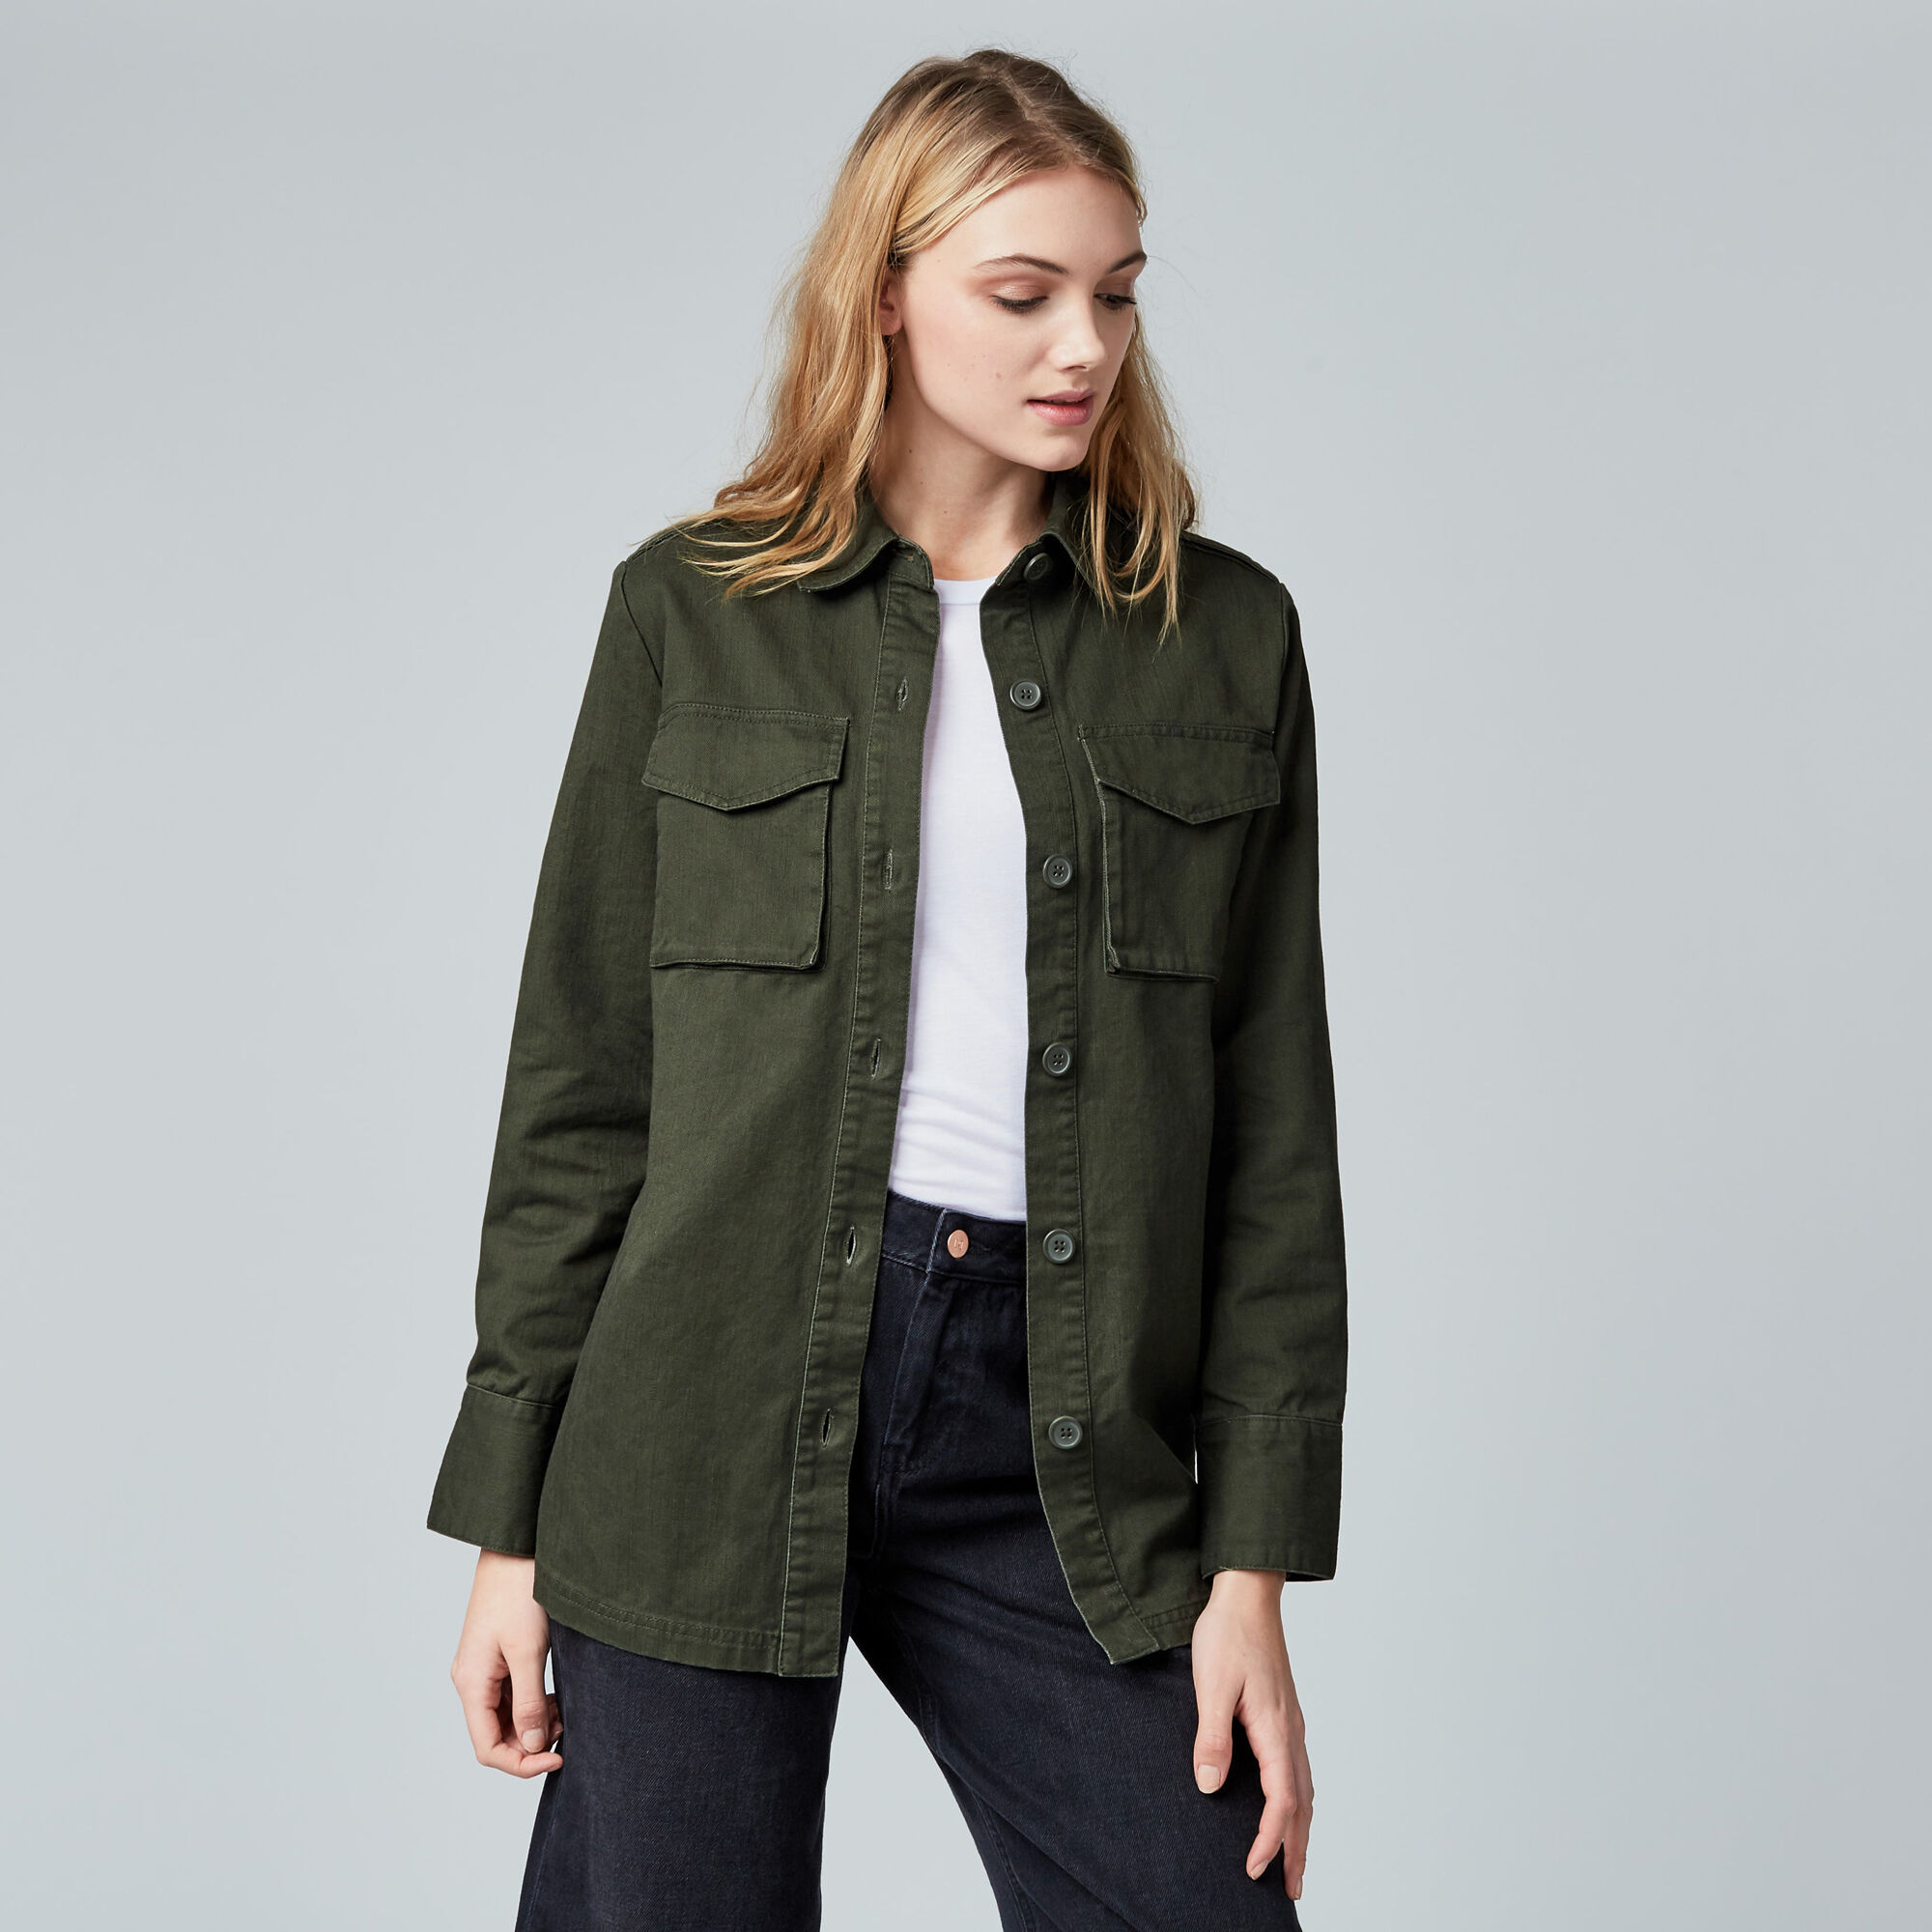 Warehouse, SHACKET Khaki 1